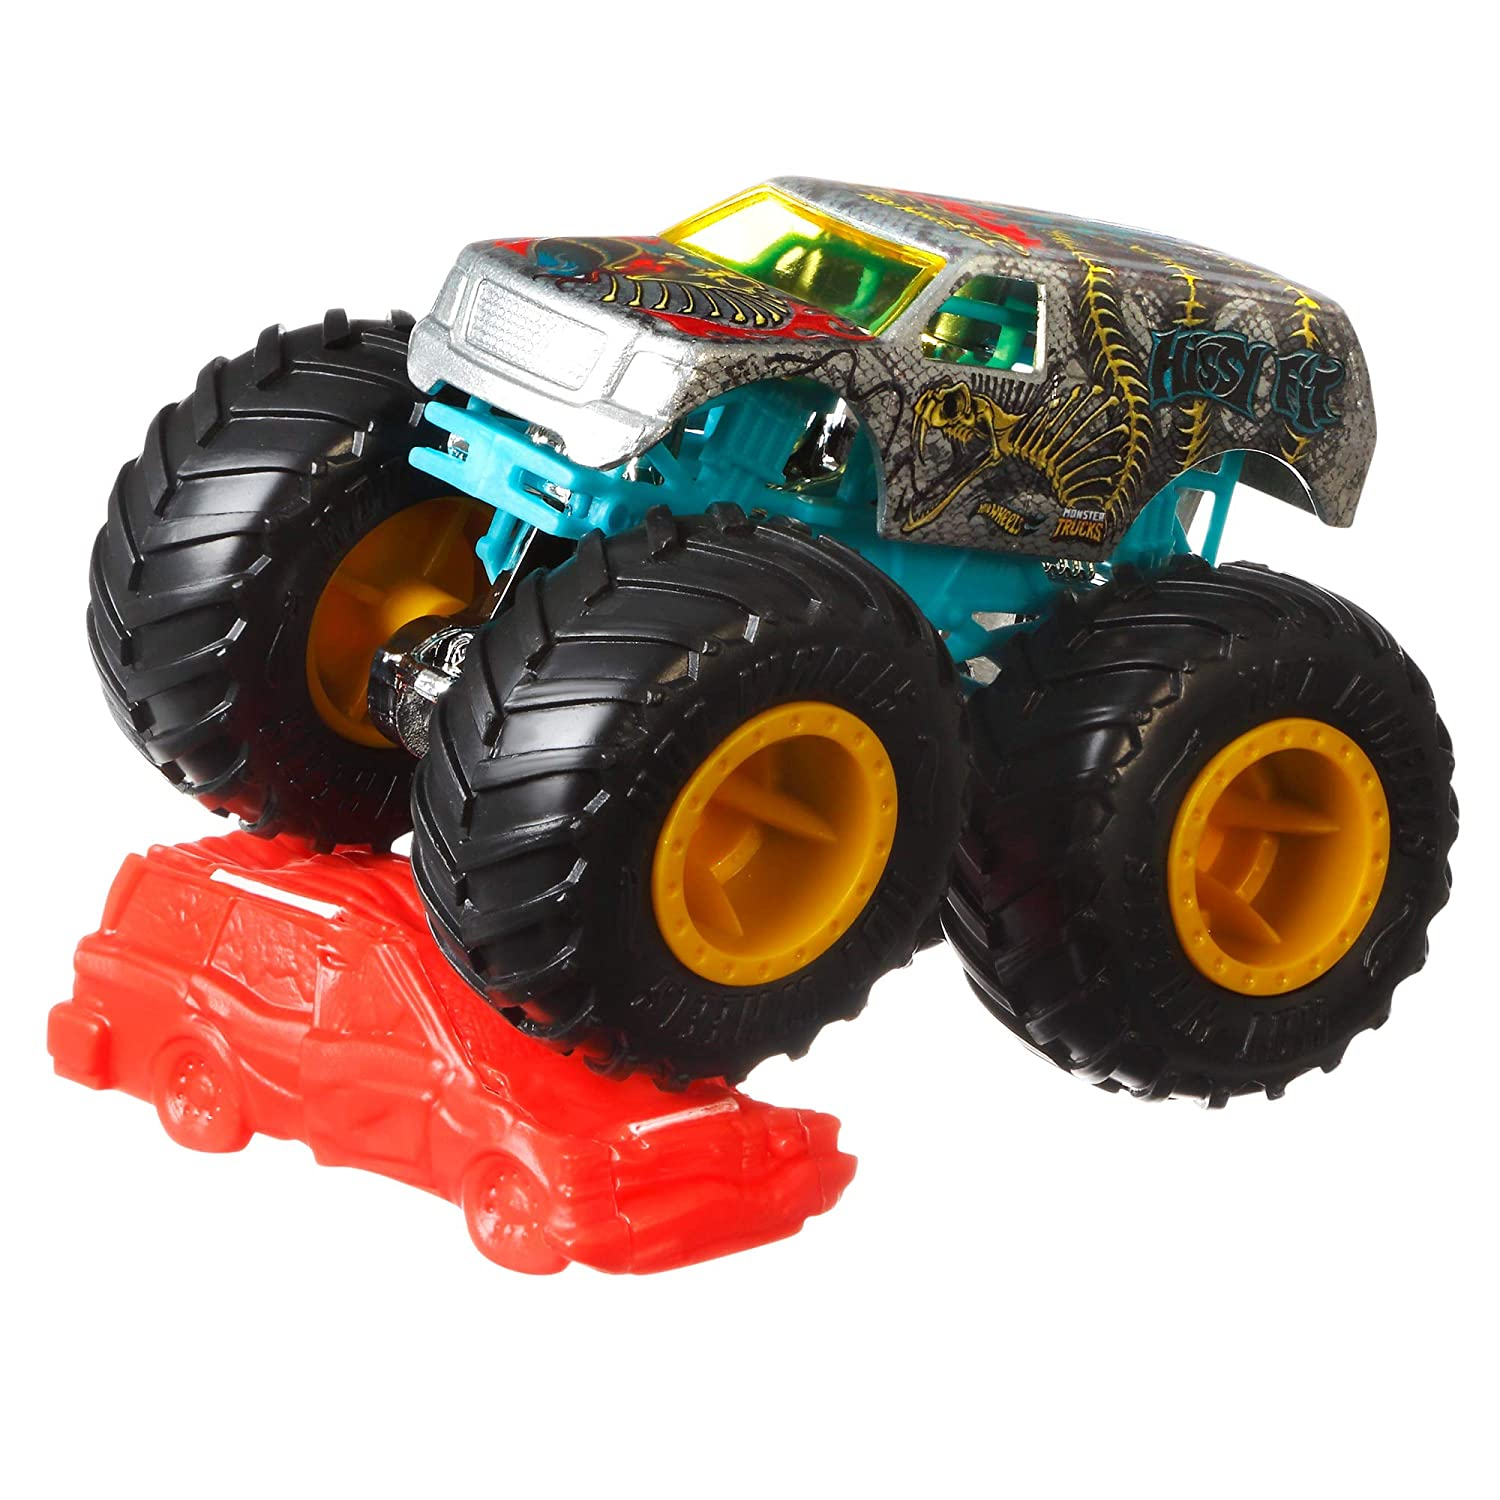 Buy Hot Wheels Monster Trucks 1 64 Assorted Online At Low Prices In India Amazon In